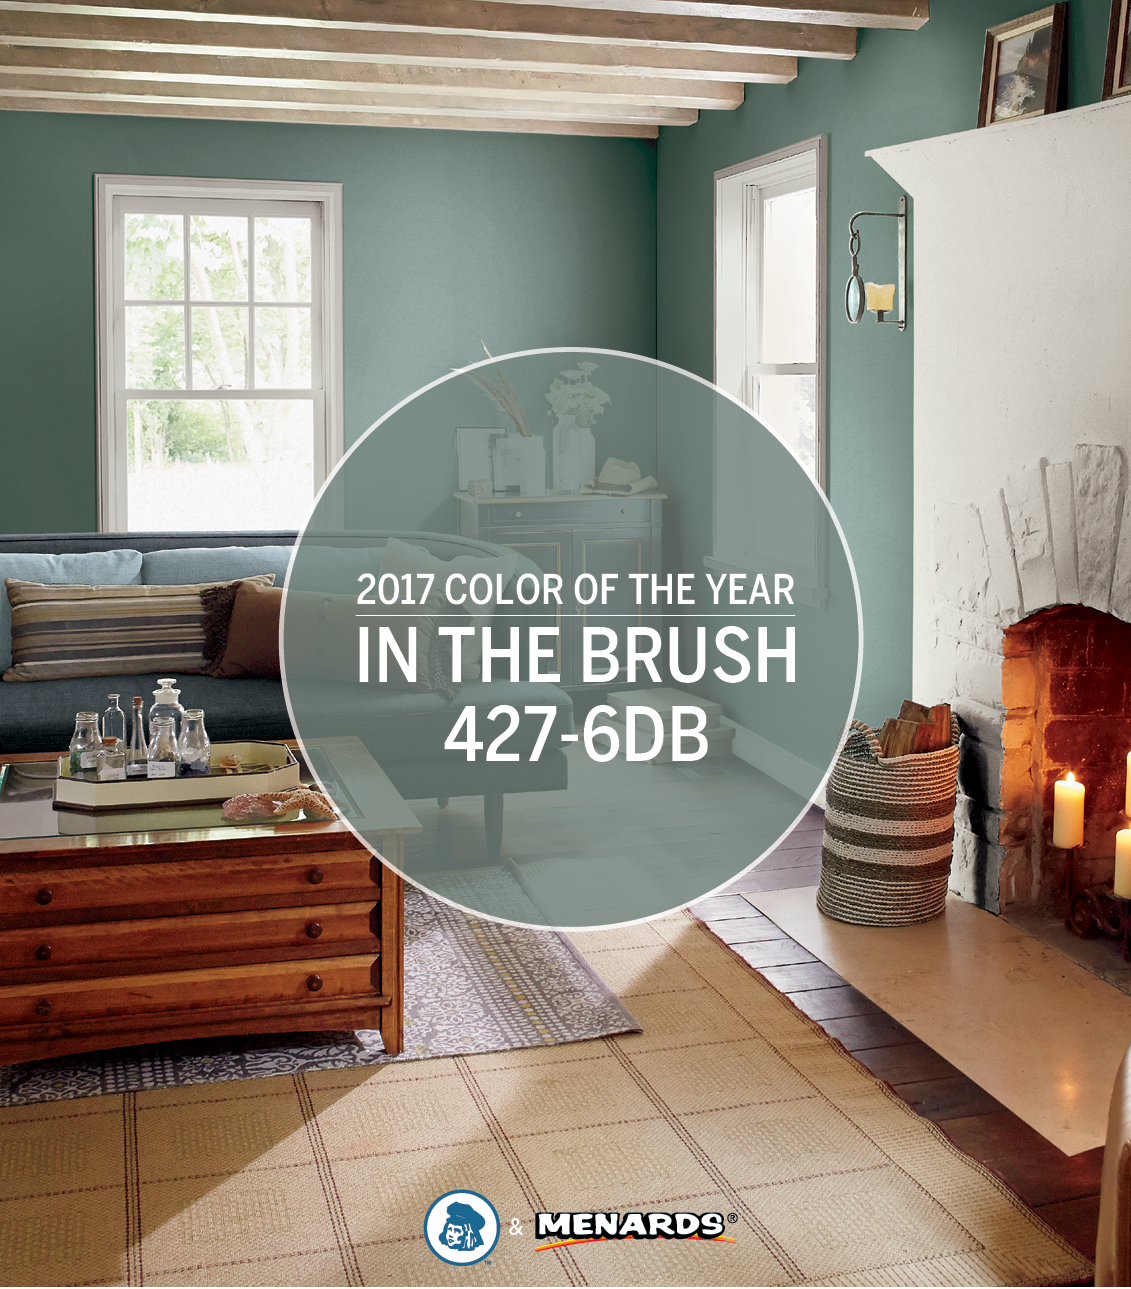 rejuvenate your home with the dutch boy 2017 color of the year